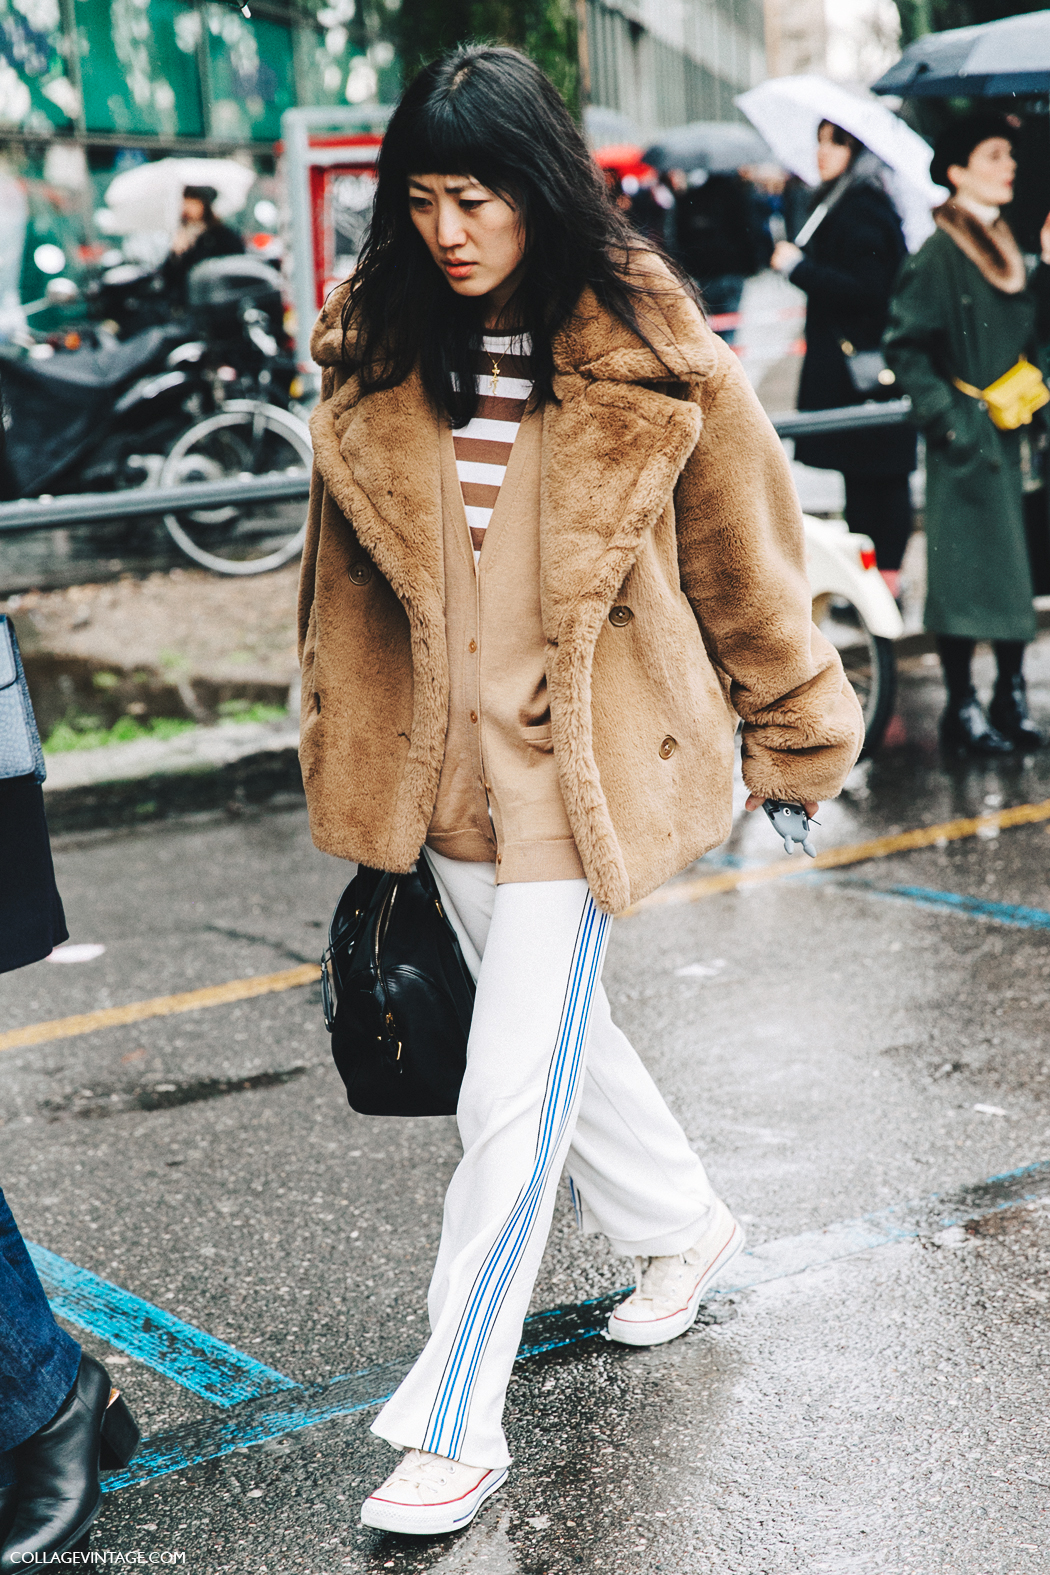 Milan_Fashion_Week_Fall_16-MFW-Street_Style-Collage_Vintage-Fur_Coat_Striped_Top-1